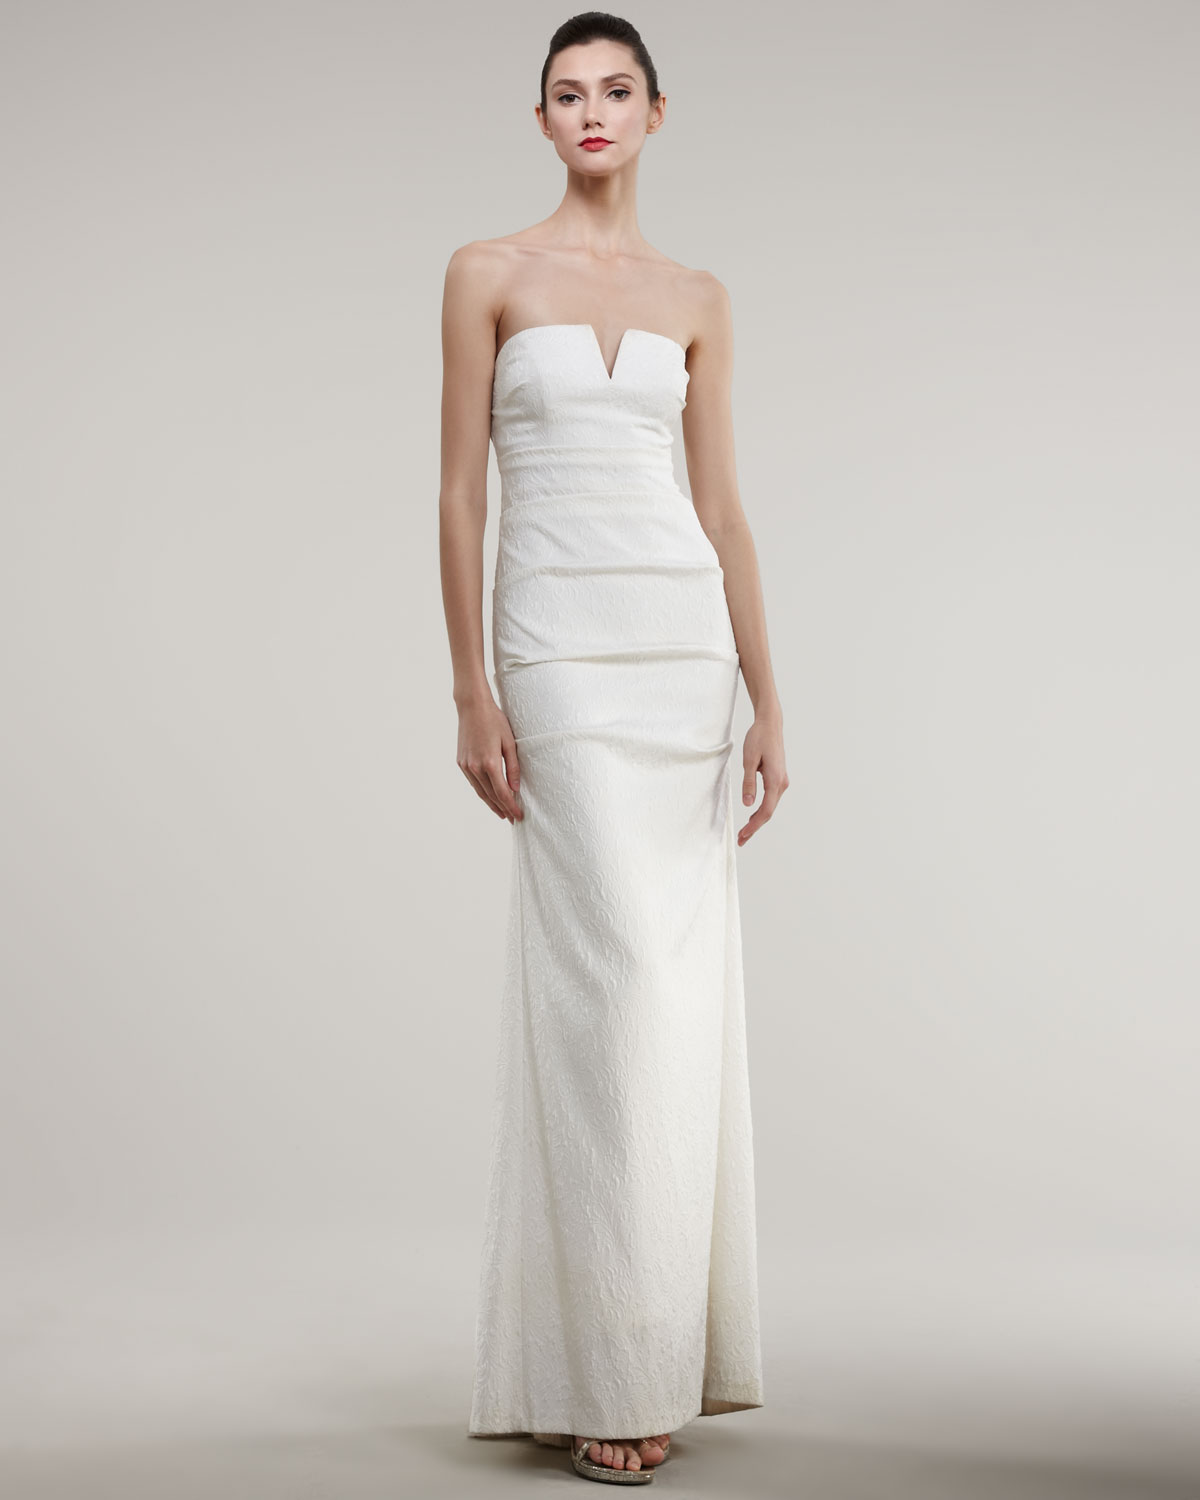 Lyst - Nicole Miller Strapless Split-neck Jacquard Gown in White